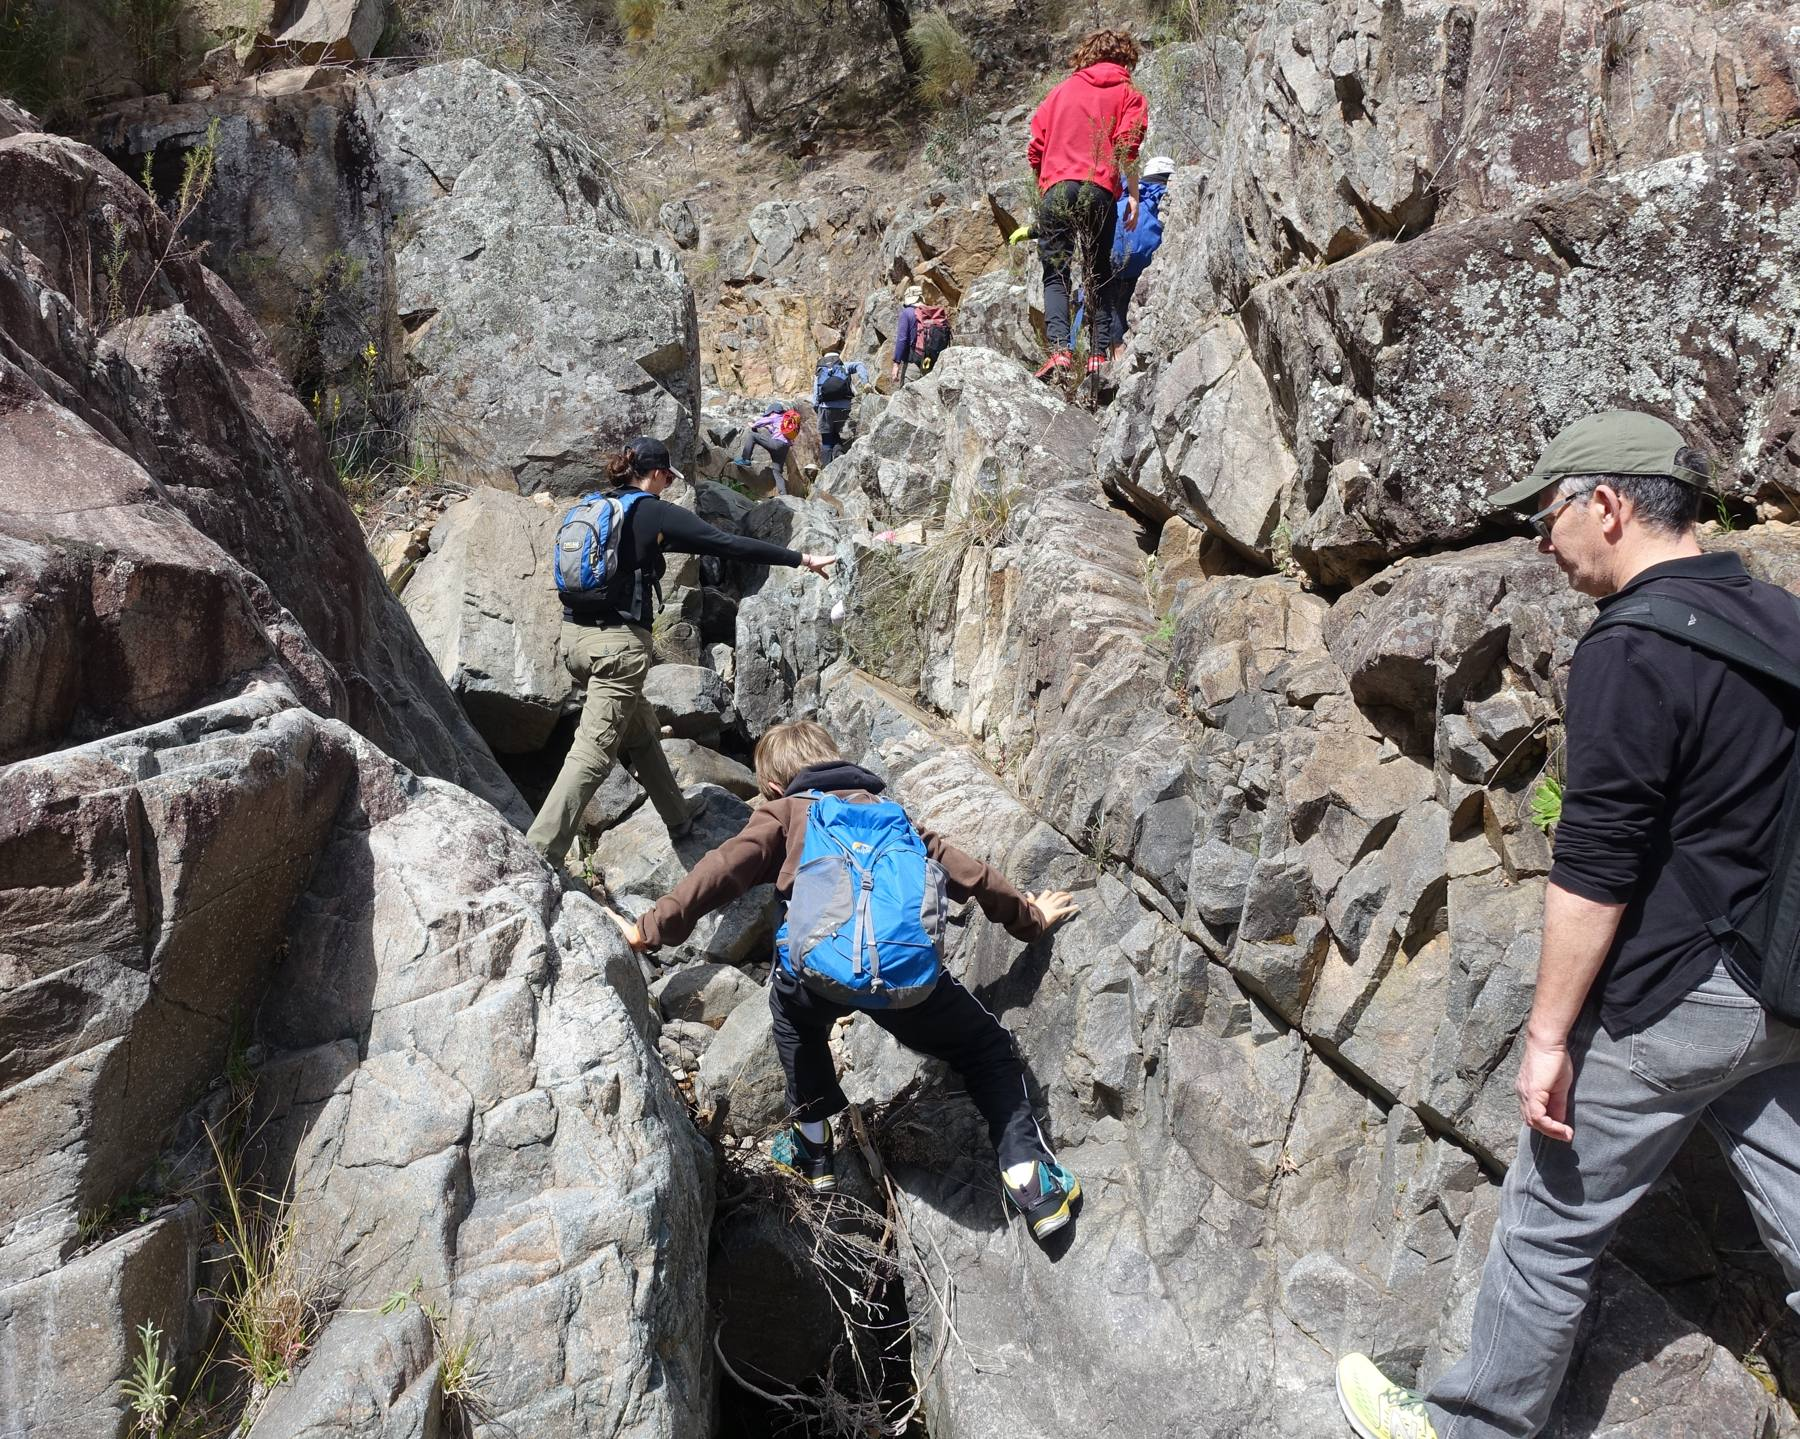 Older kids learning rock scrambling skills, Rob Roy almost-canyon, ACT, by Meg McKone